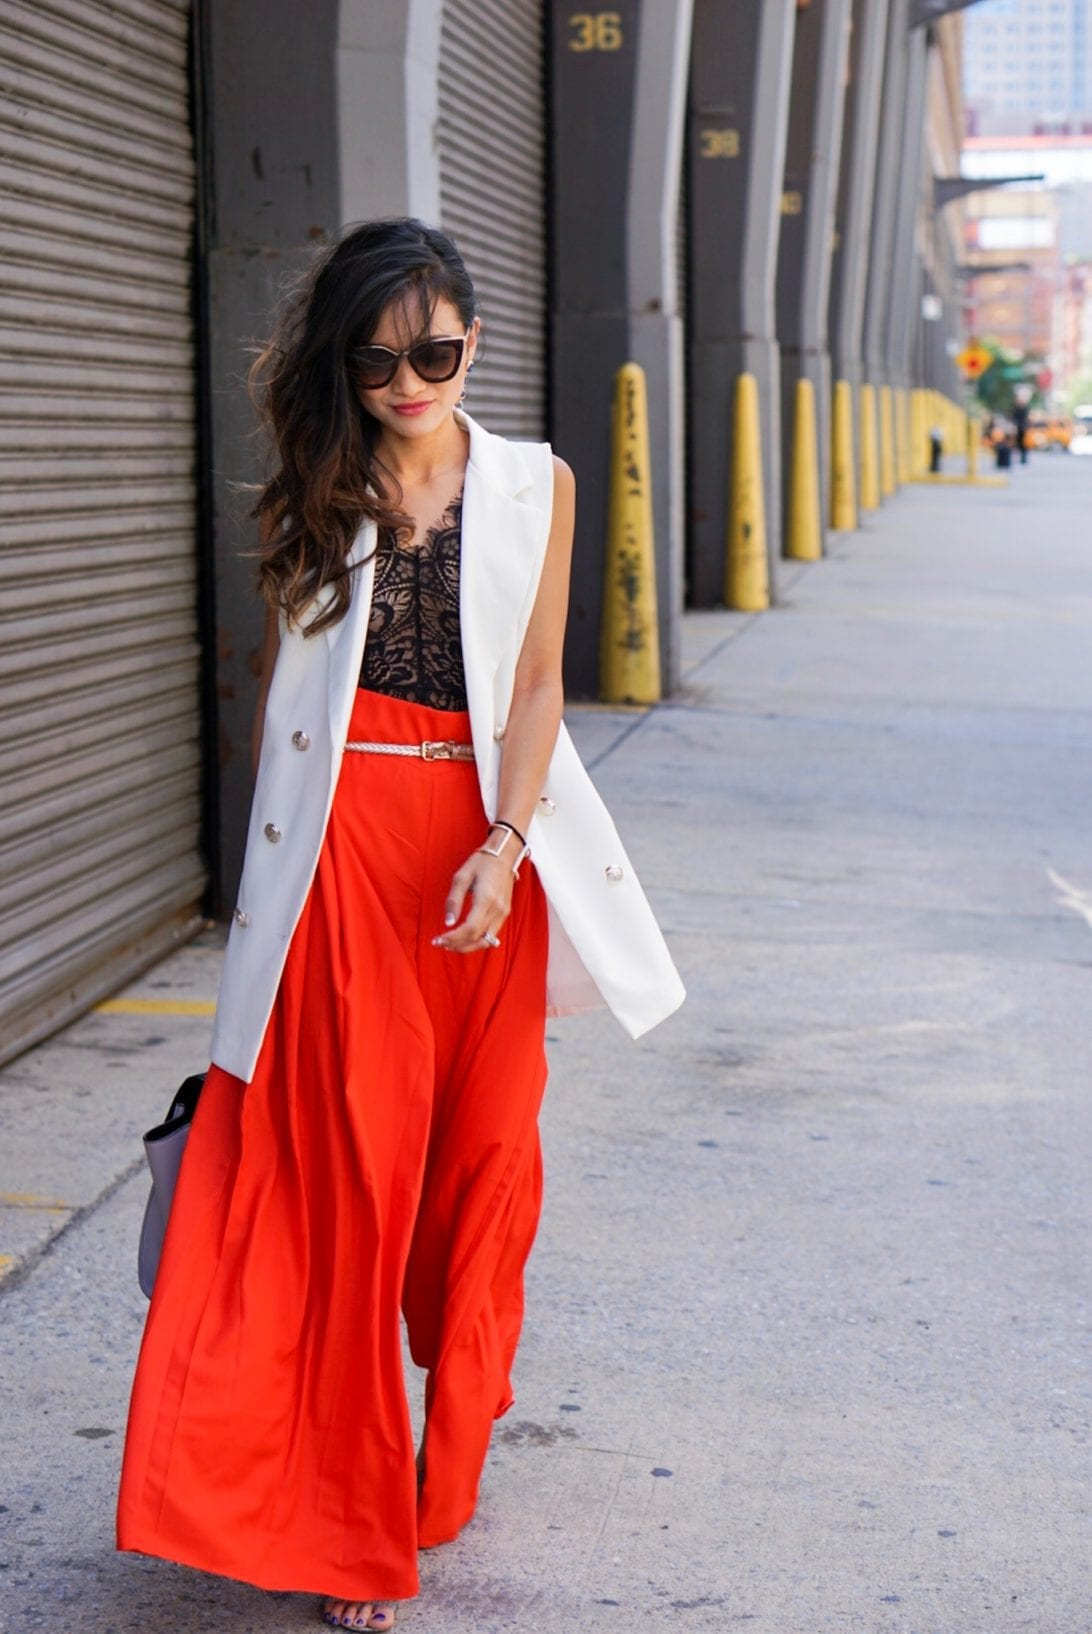 RED WIDE LEG PANTS, AGACI, NYFW SEPTEMBER 2017, NYFW STYLE, NYFW OUTFITS, New York FASHION WEEK, BLACK LACE BODYSUIT, PRADA SUNGLASSES, WHITE VEST